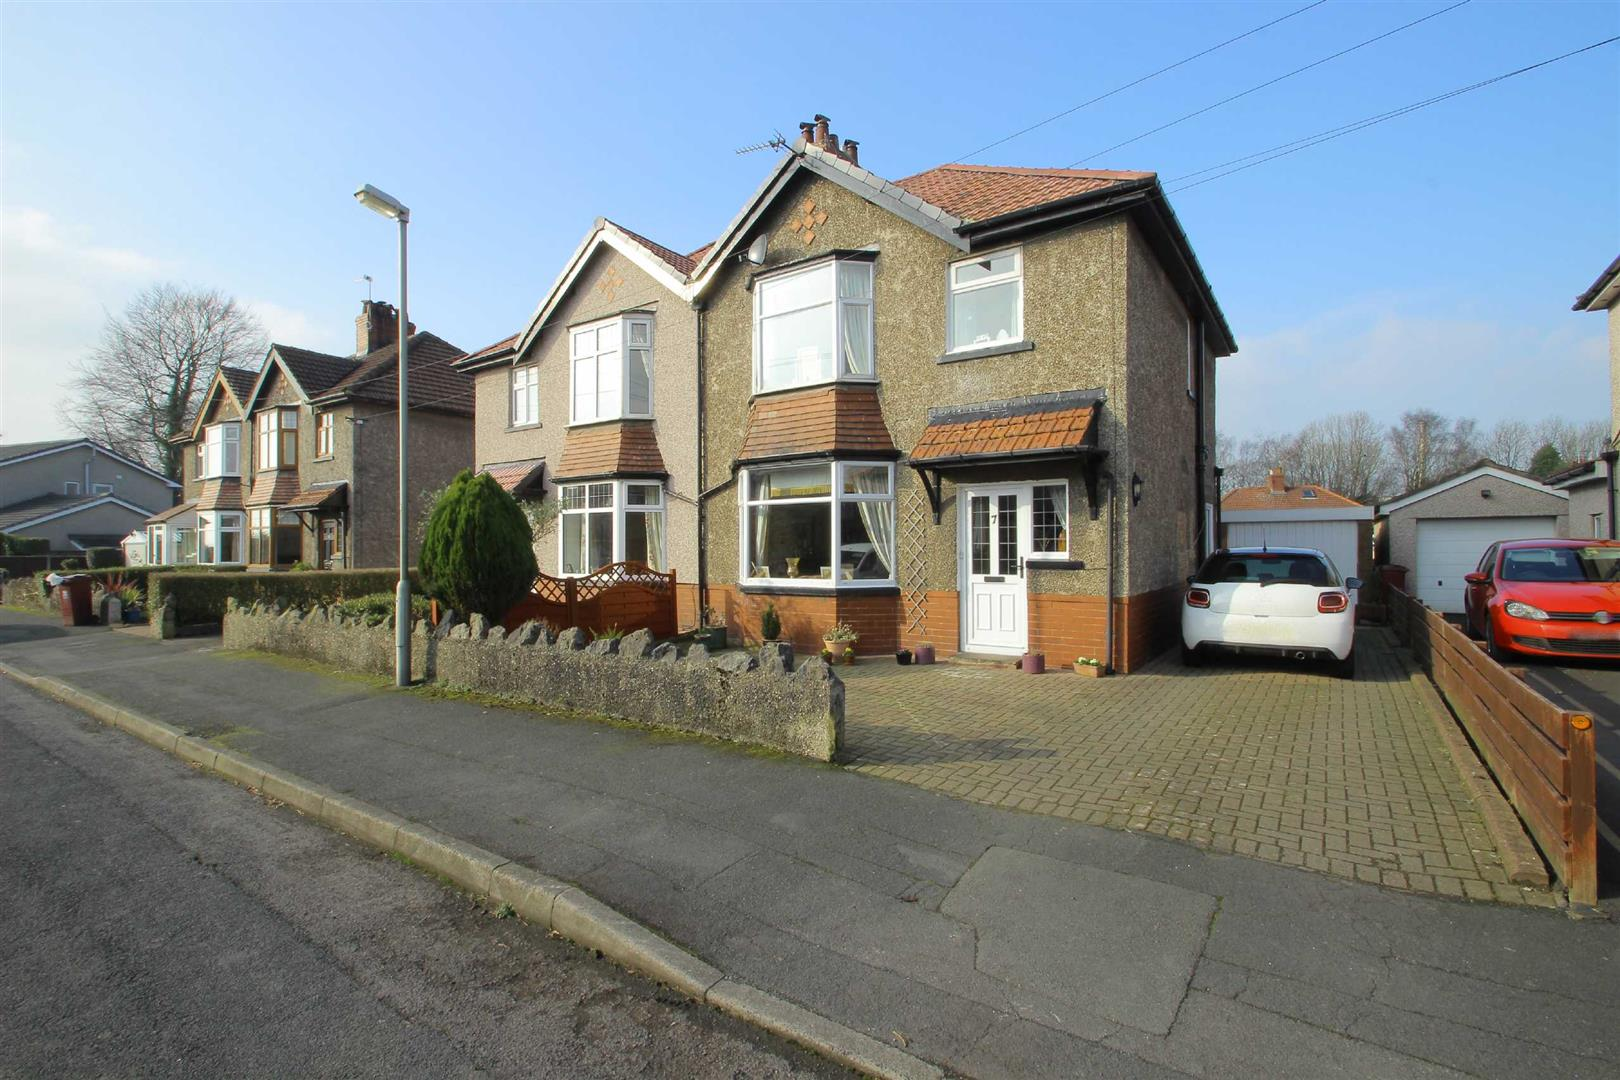 Property For Sale In Clitheroe